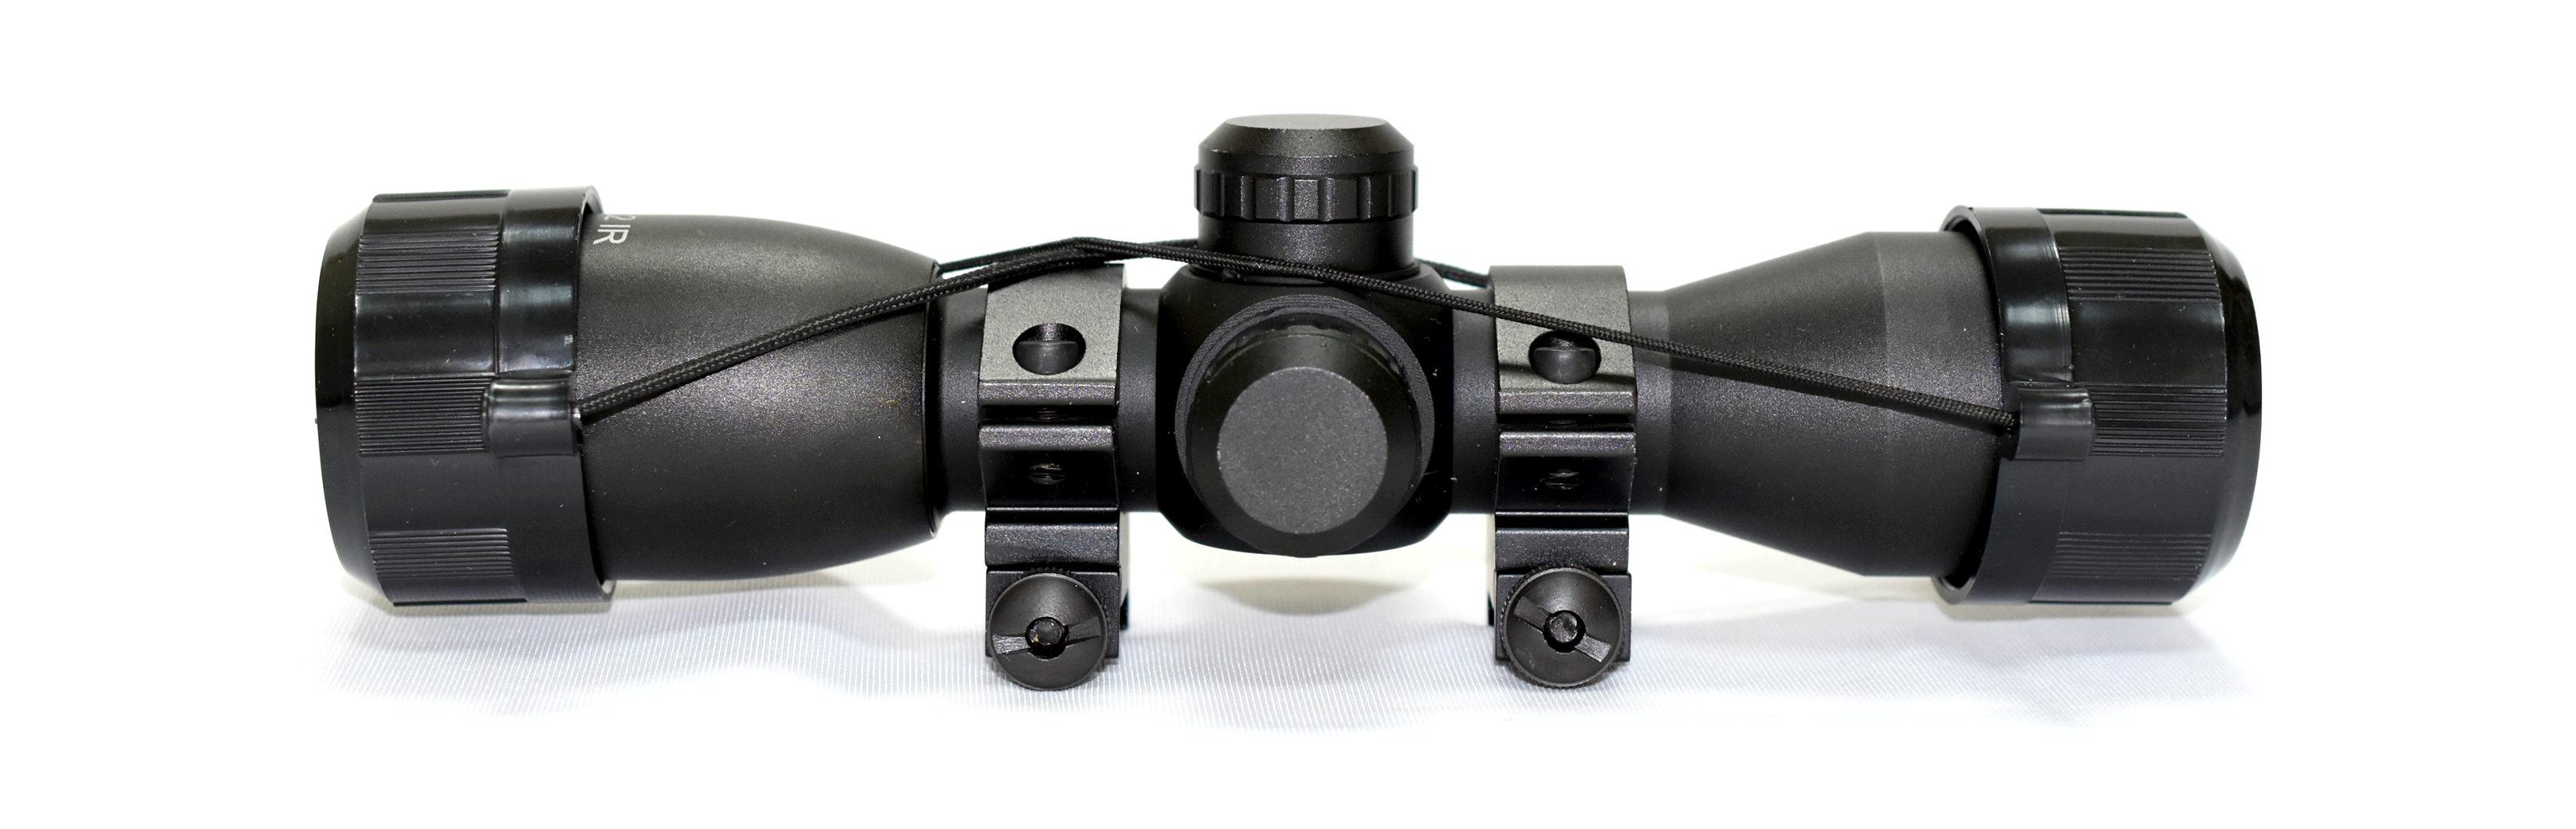 /archive/product/item/images/4x32Multi-RangeWireReticleScope/4x32-Multi-Range-Wire-Reticle-Scope-3.png